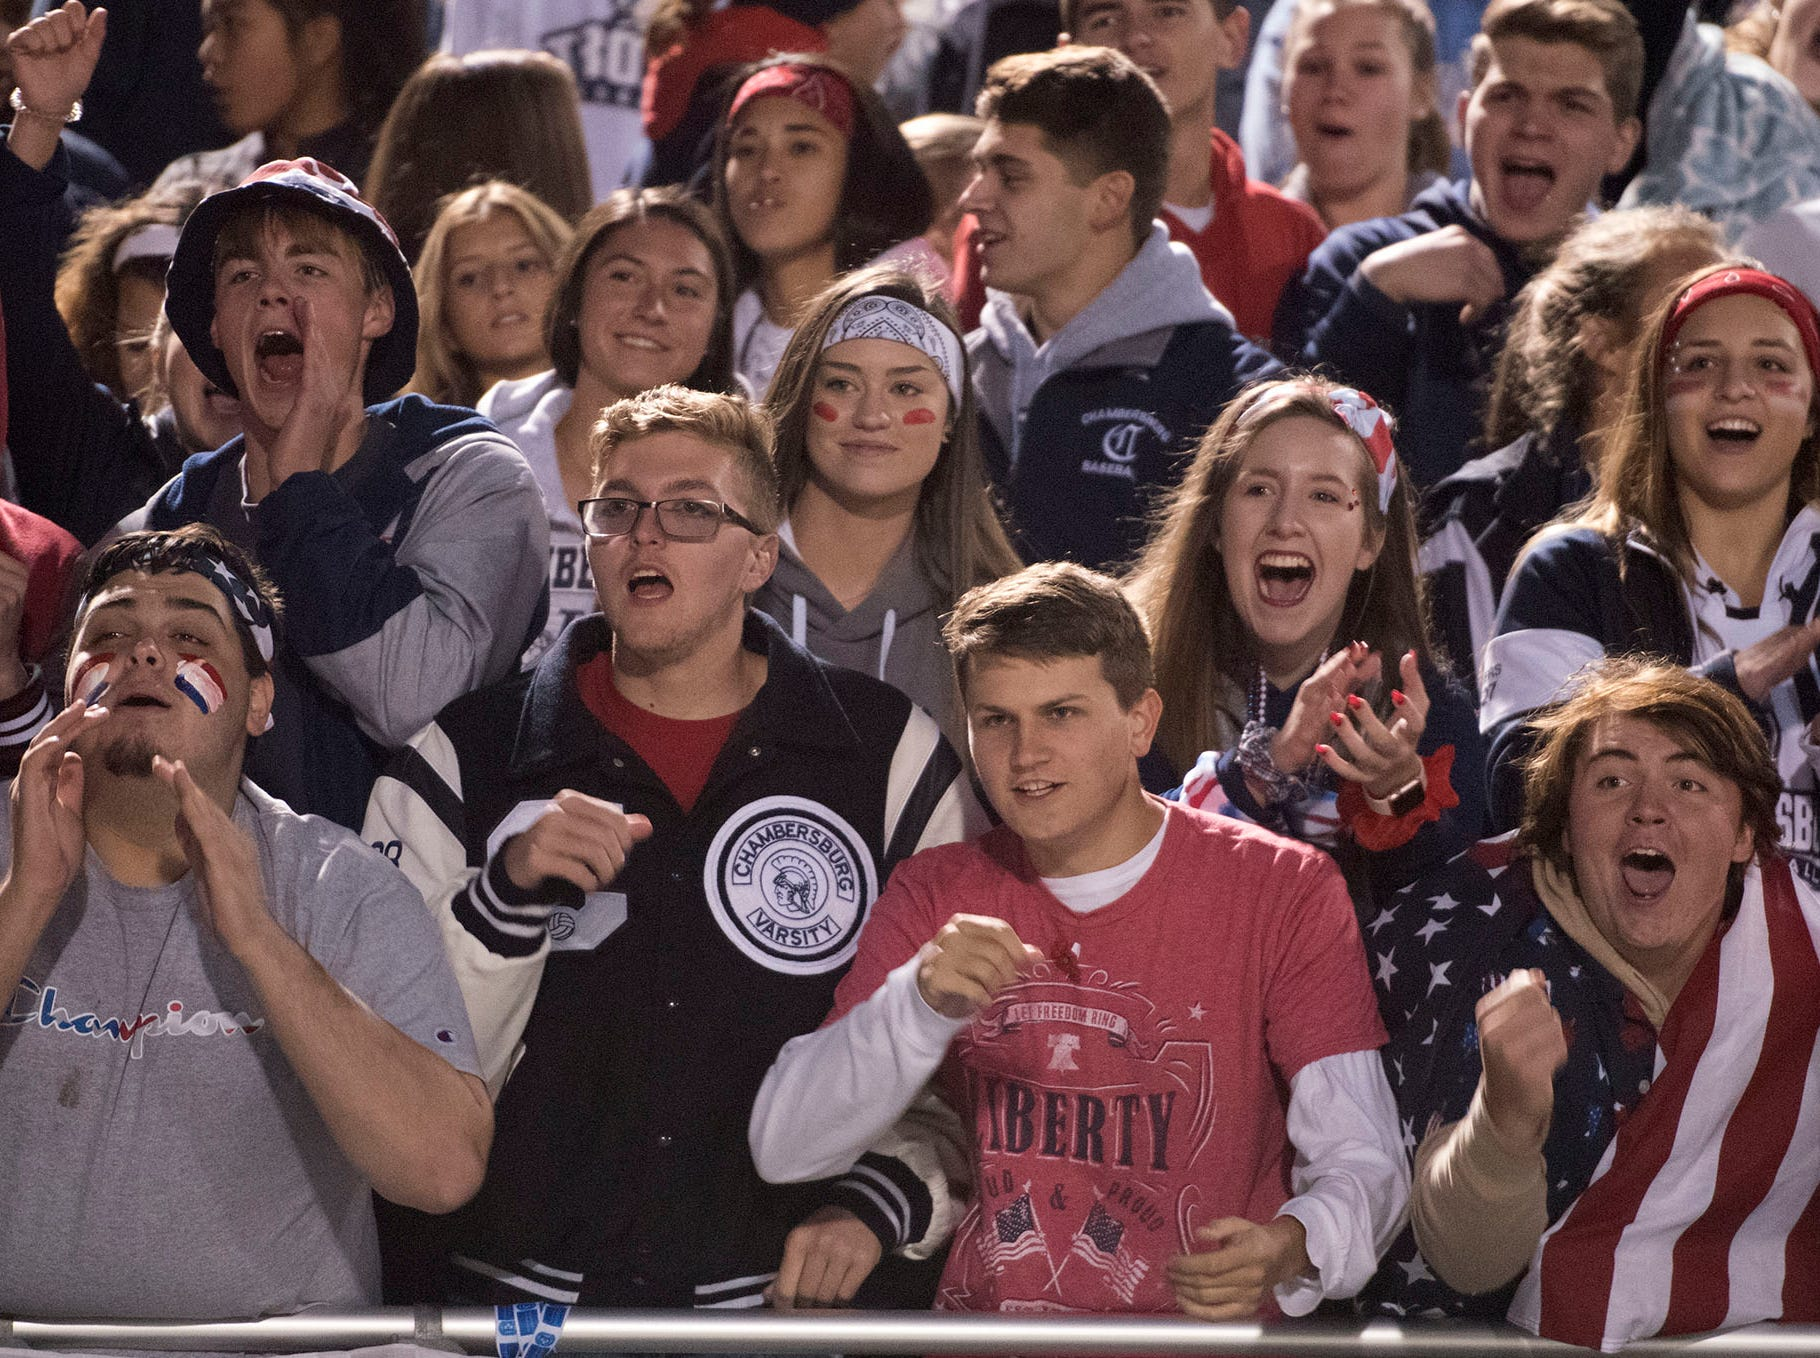 Chambersburg fans cheer. Chambersburg dropped a 28-13 game against Harrisburg in PIAA football on Friday, Oct. 12, 2018.